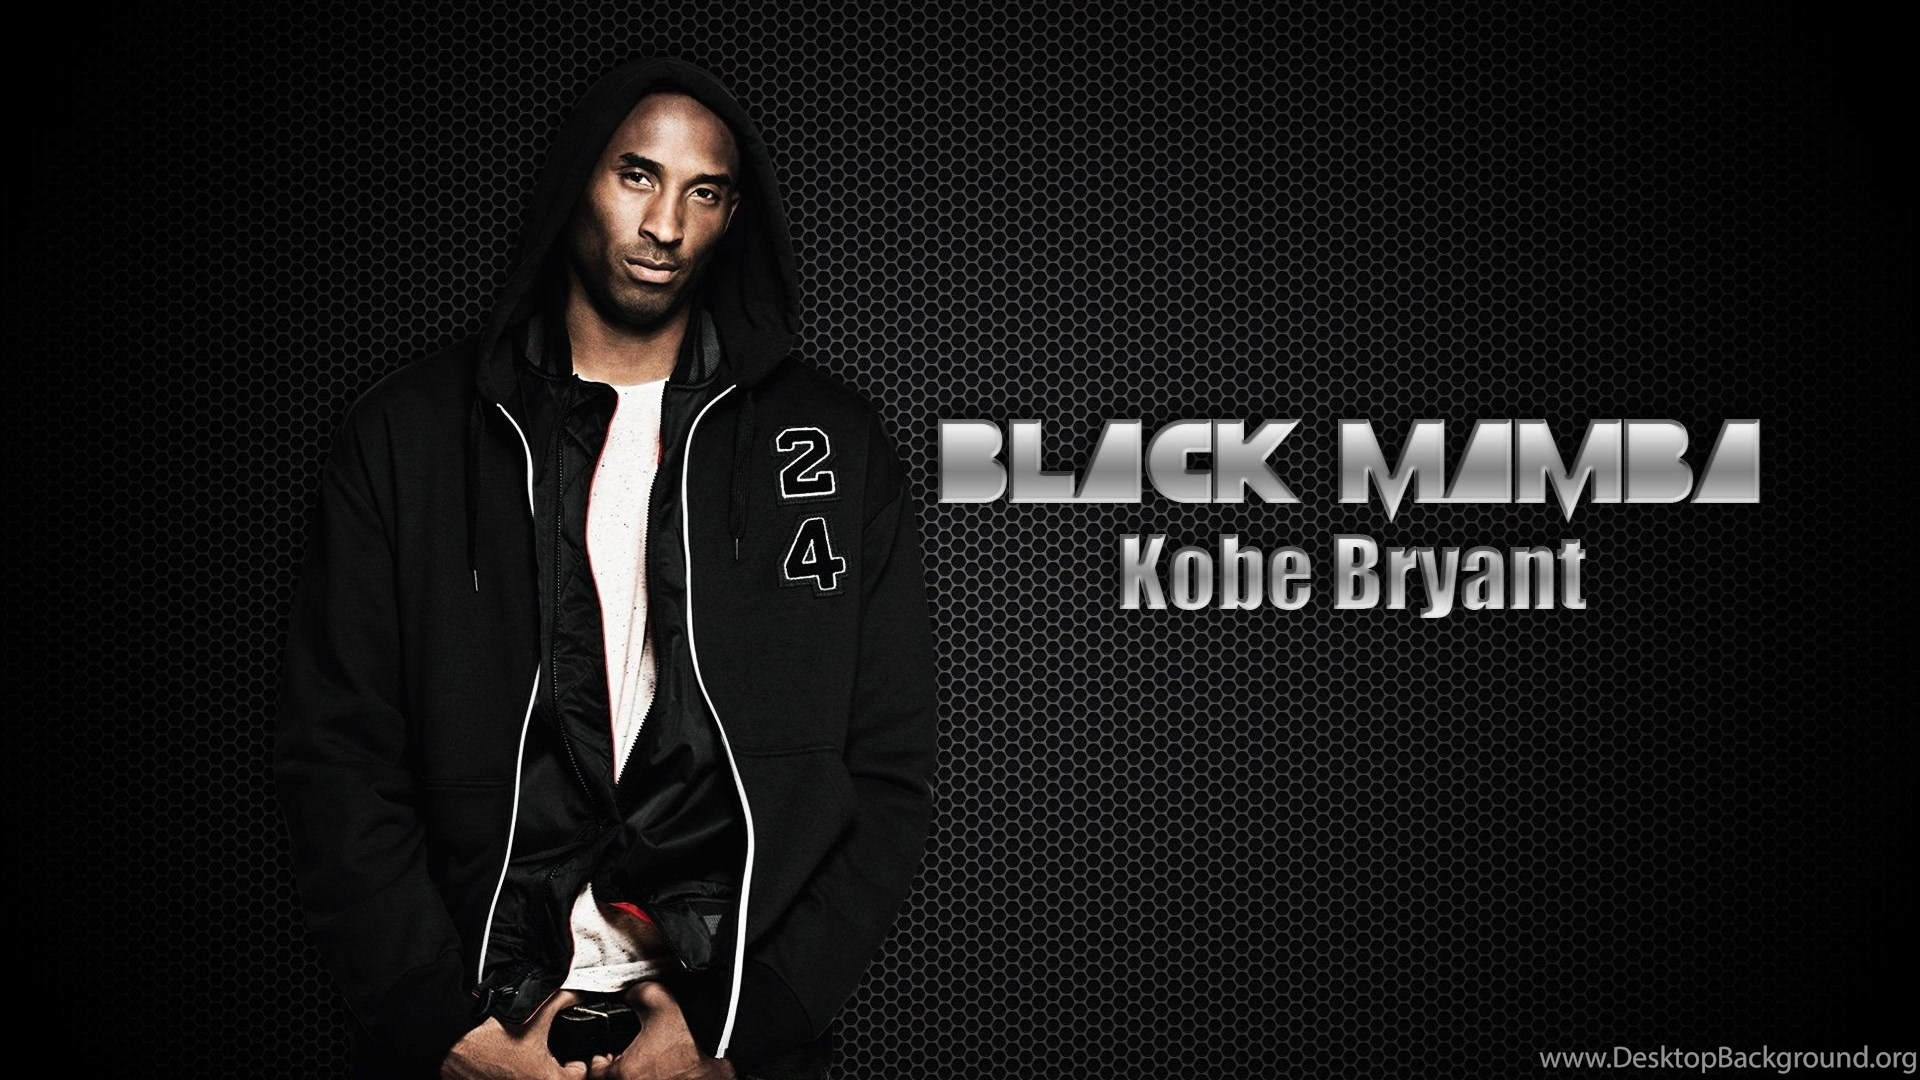 Kobe Bryant Wallpapers Black Mamba Wallpapers 927911 Desktop